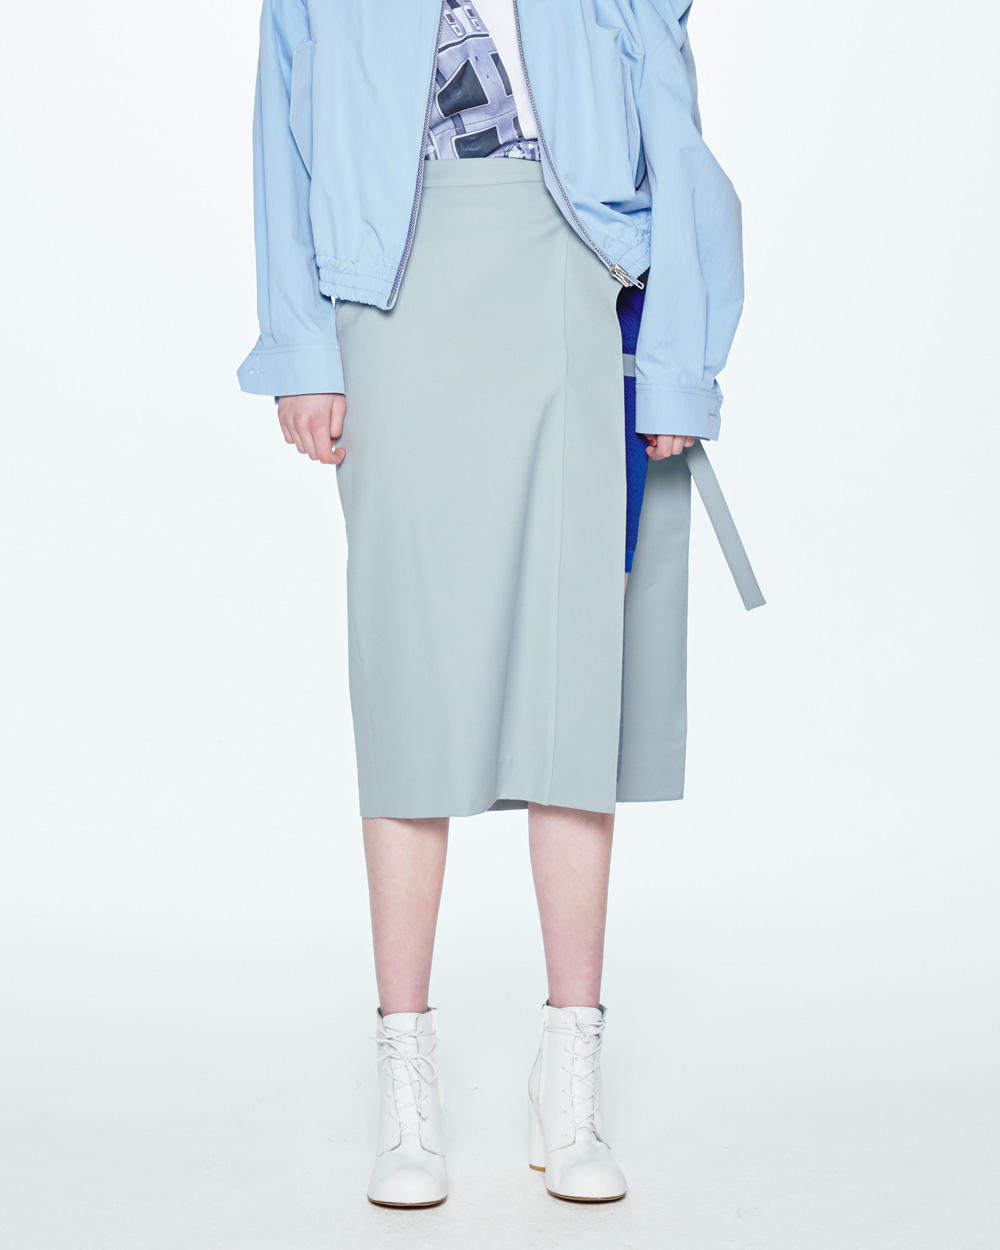 SS20 SIDE OPEN GREY SKIRT